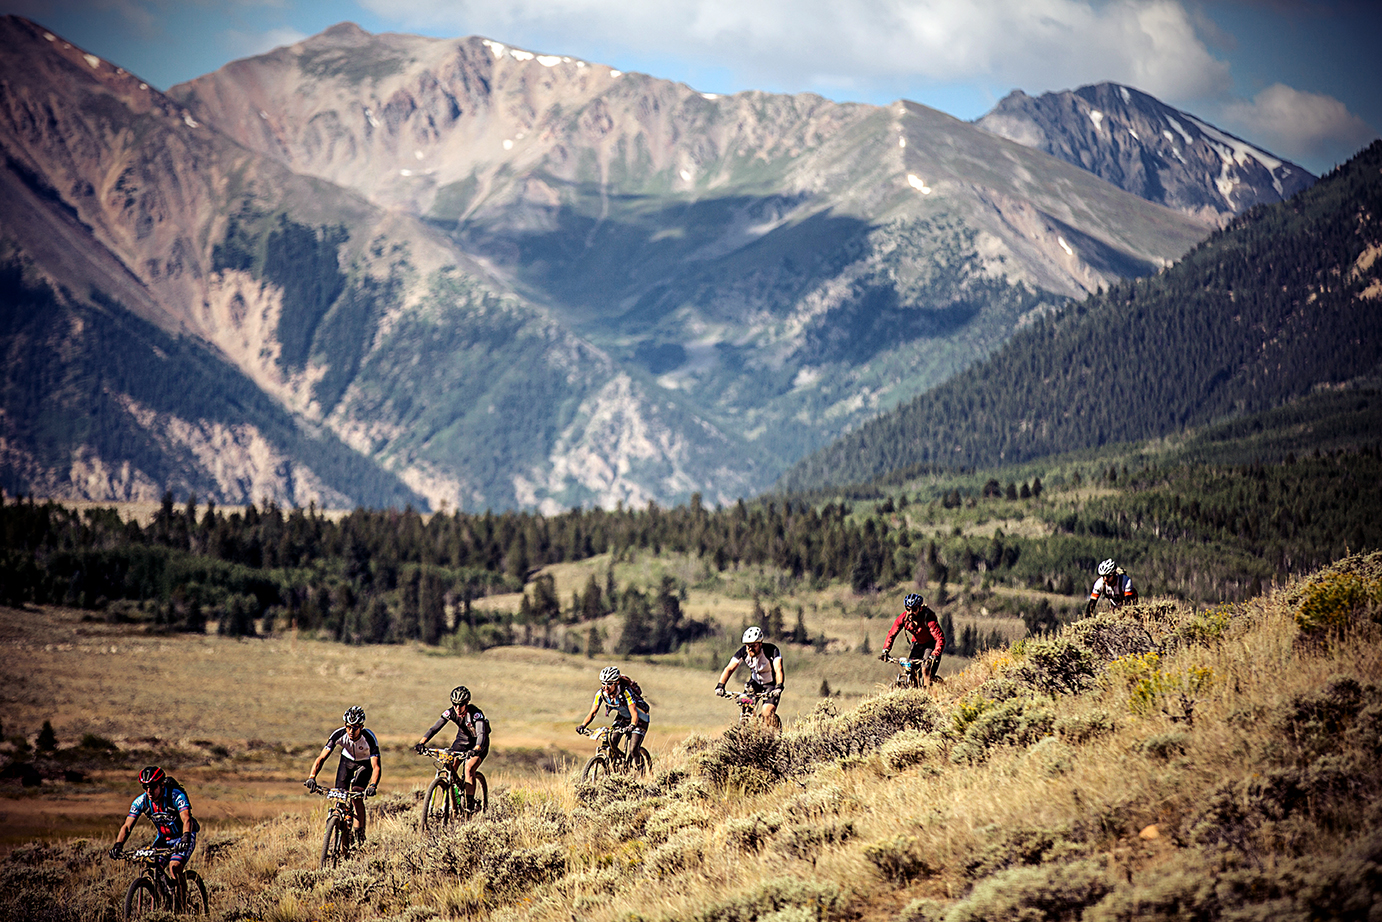 2016 leadville lottery opens today for blueprint for athletes 2016 leadville lottery opens today for blueprint for athletes leadville trail 100 mtb and 100 run events in august endurance sports wire malvernweather Gallery